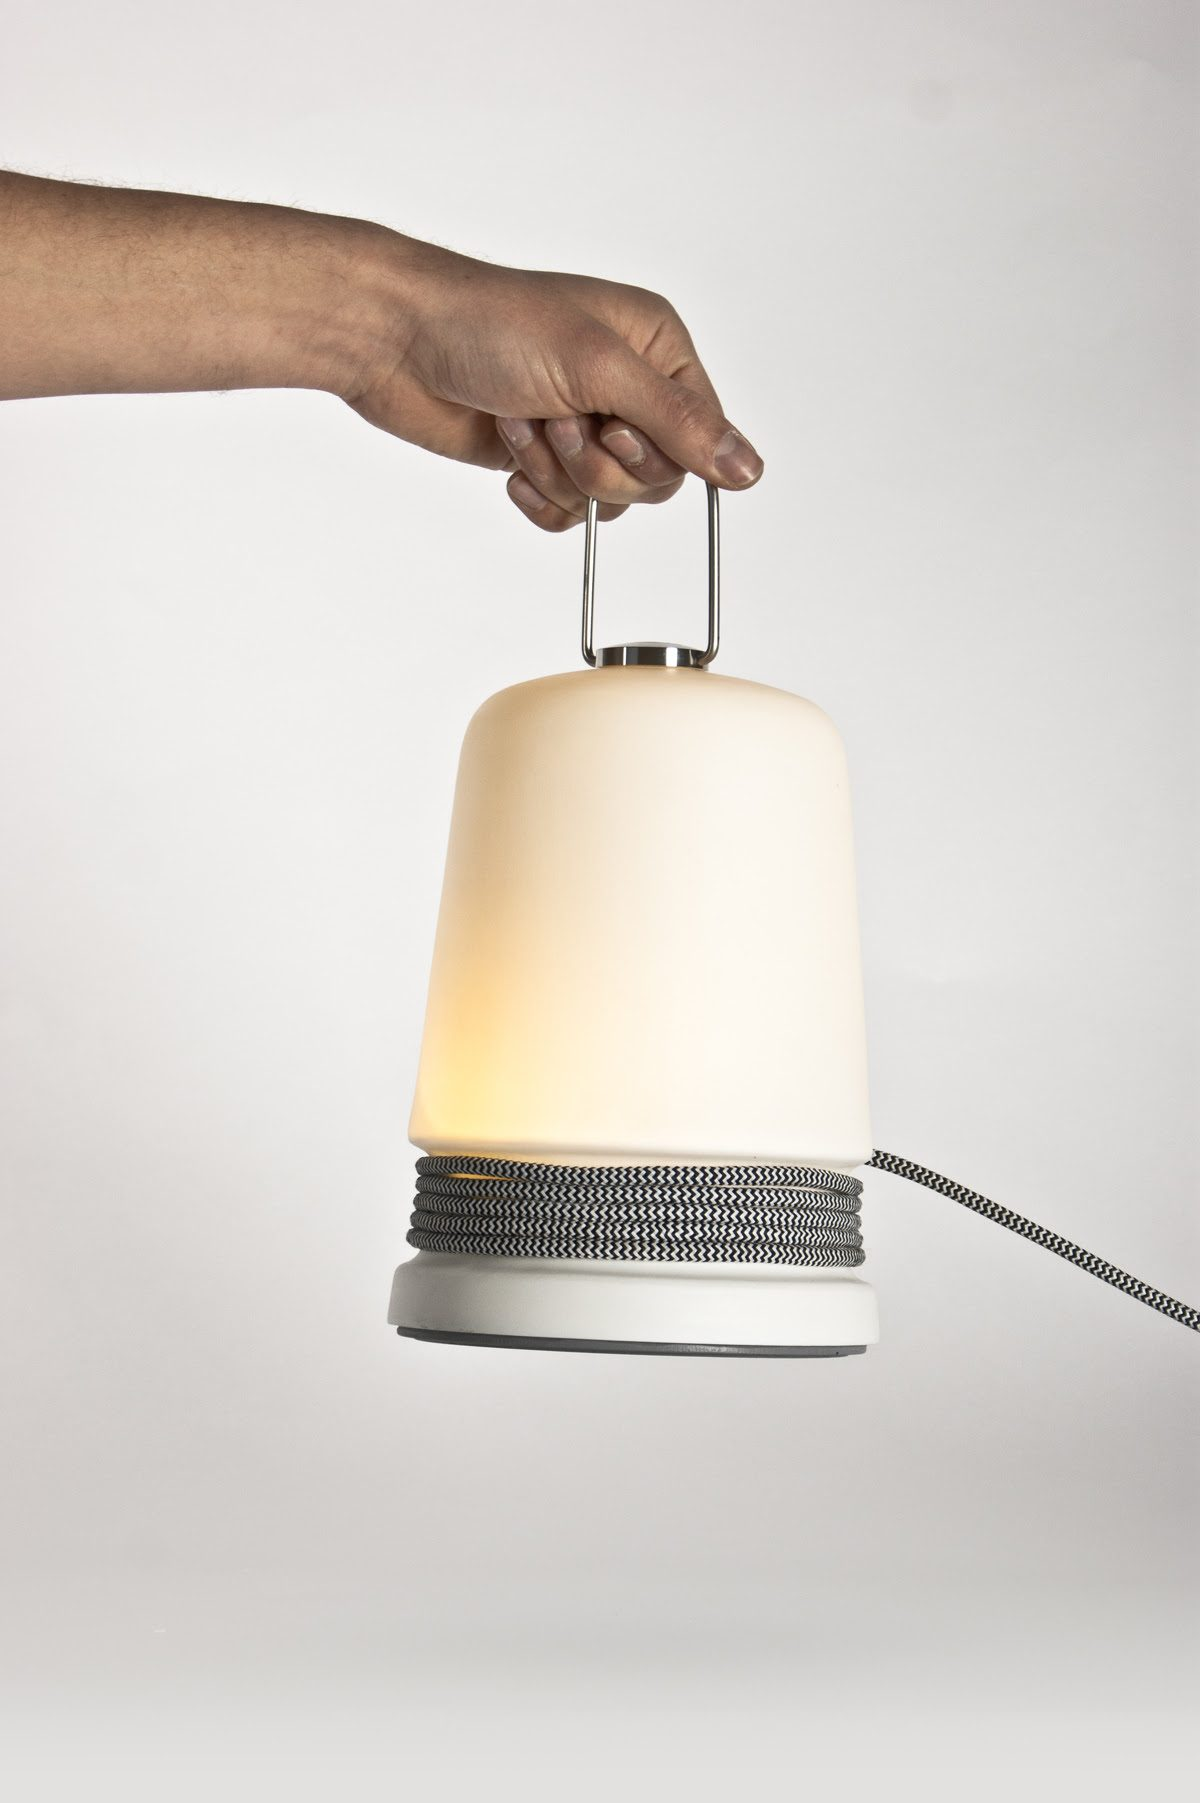 Patrick Hartog's Table cable light – gimmiishop